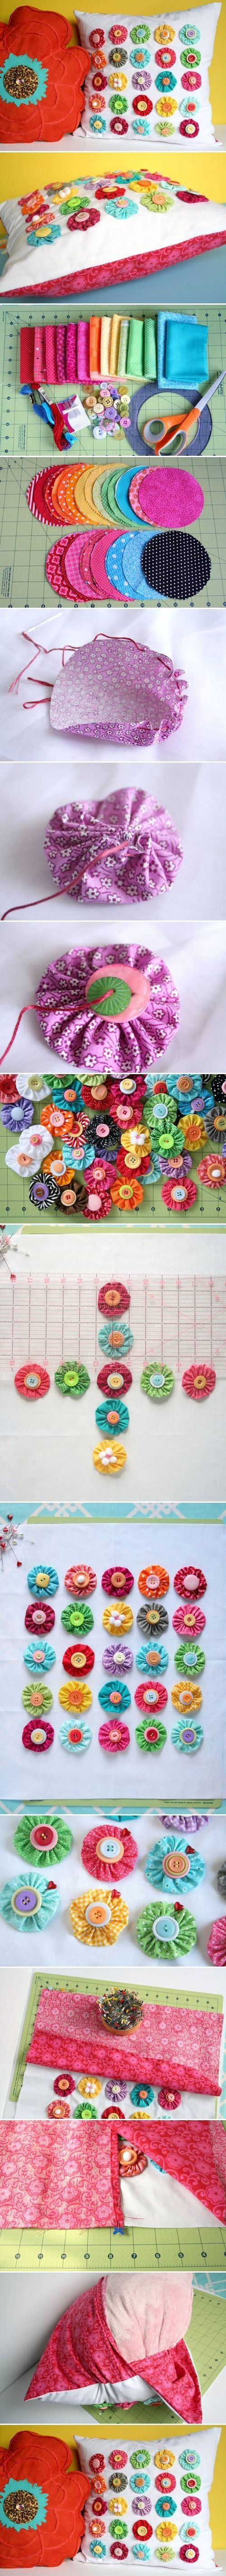 DIY Button Pillow Decorations diy crafts craft ideas easy crafts diy ideas diy idea diy home diy pillows sewing easy diy for the home crafty decor home ideas diy decorations diy sewing sewing ideas easy sewing craft sewing